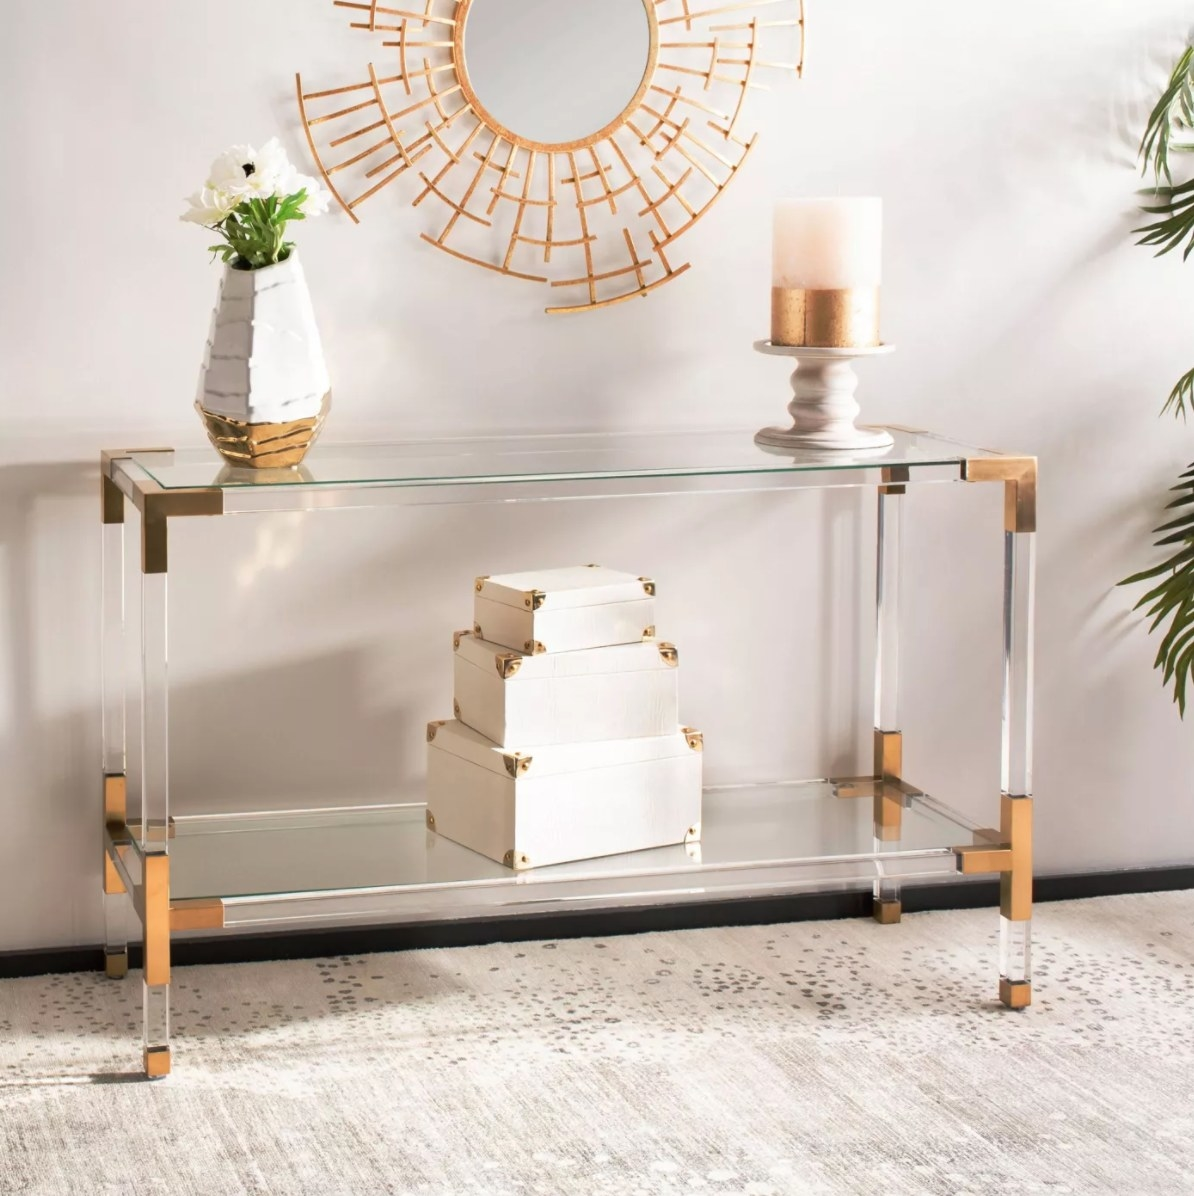 The console table in glass with gold corners holding a vase of flowers and candles